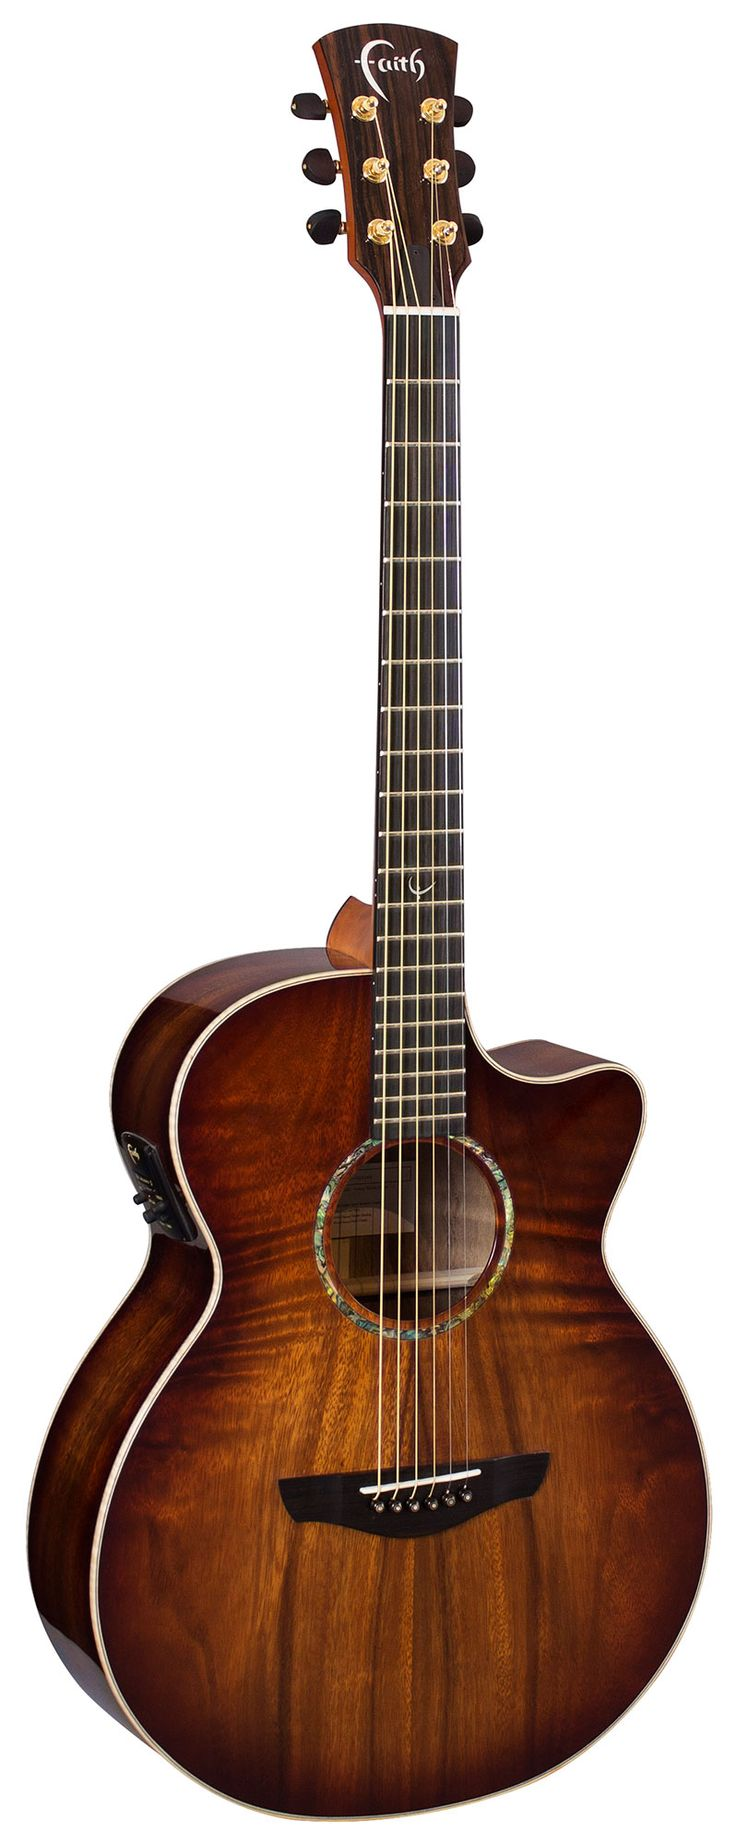 FVBMB - Venus Cut/Electro - Faith Guitars | Patrick James Eggle | Natural, Trembesi, Hi-Gloss, Eclipse series acoustic, electro acoustic, cutaway guitars | Barnes and Mullins Ltd